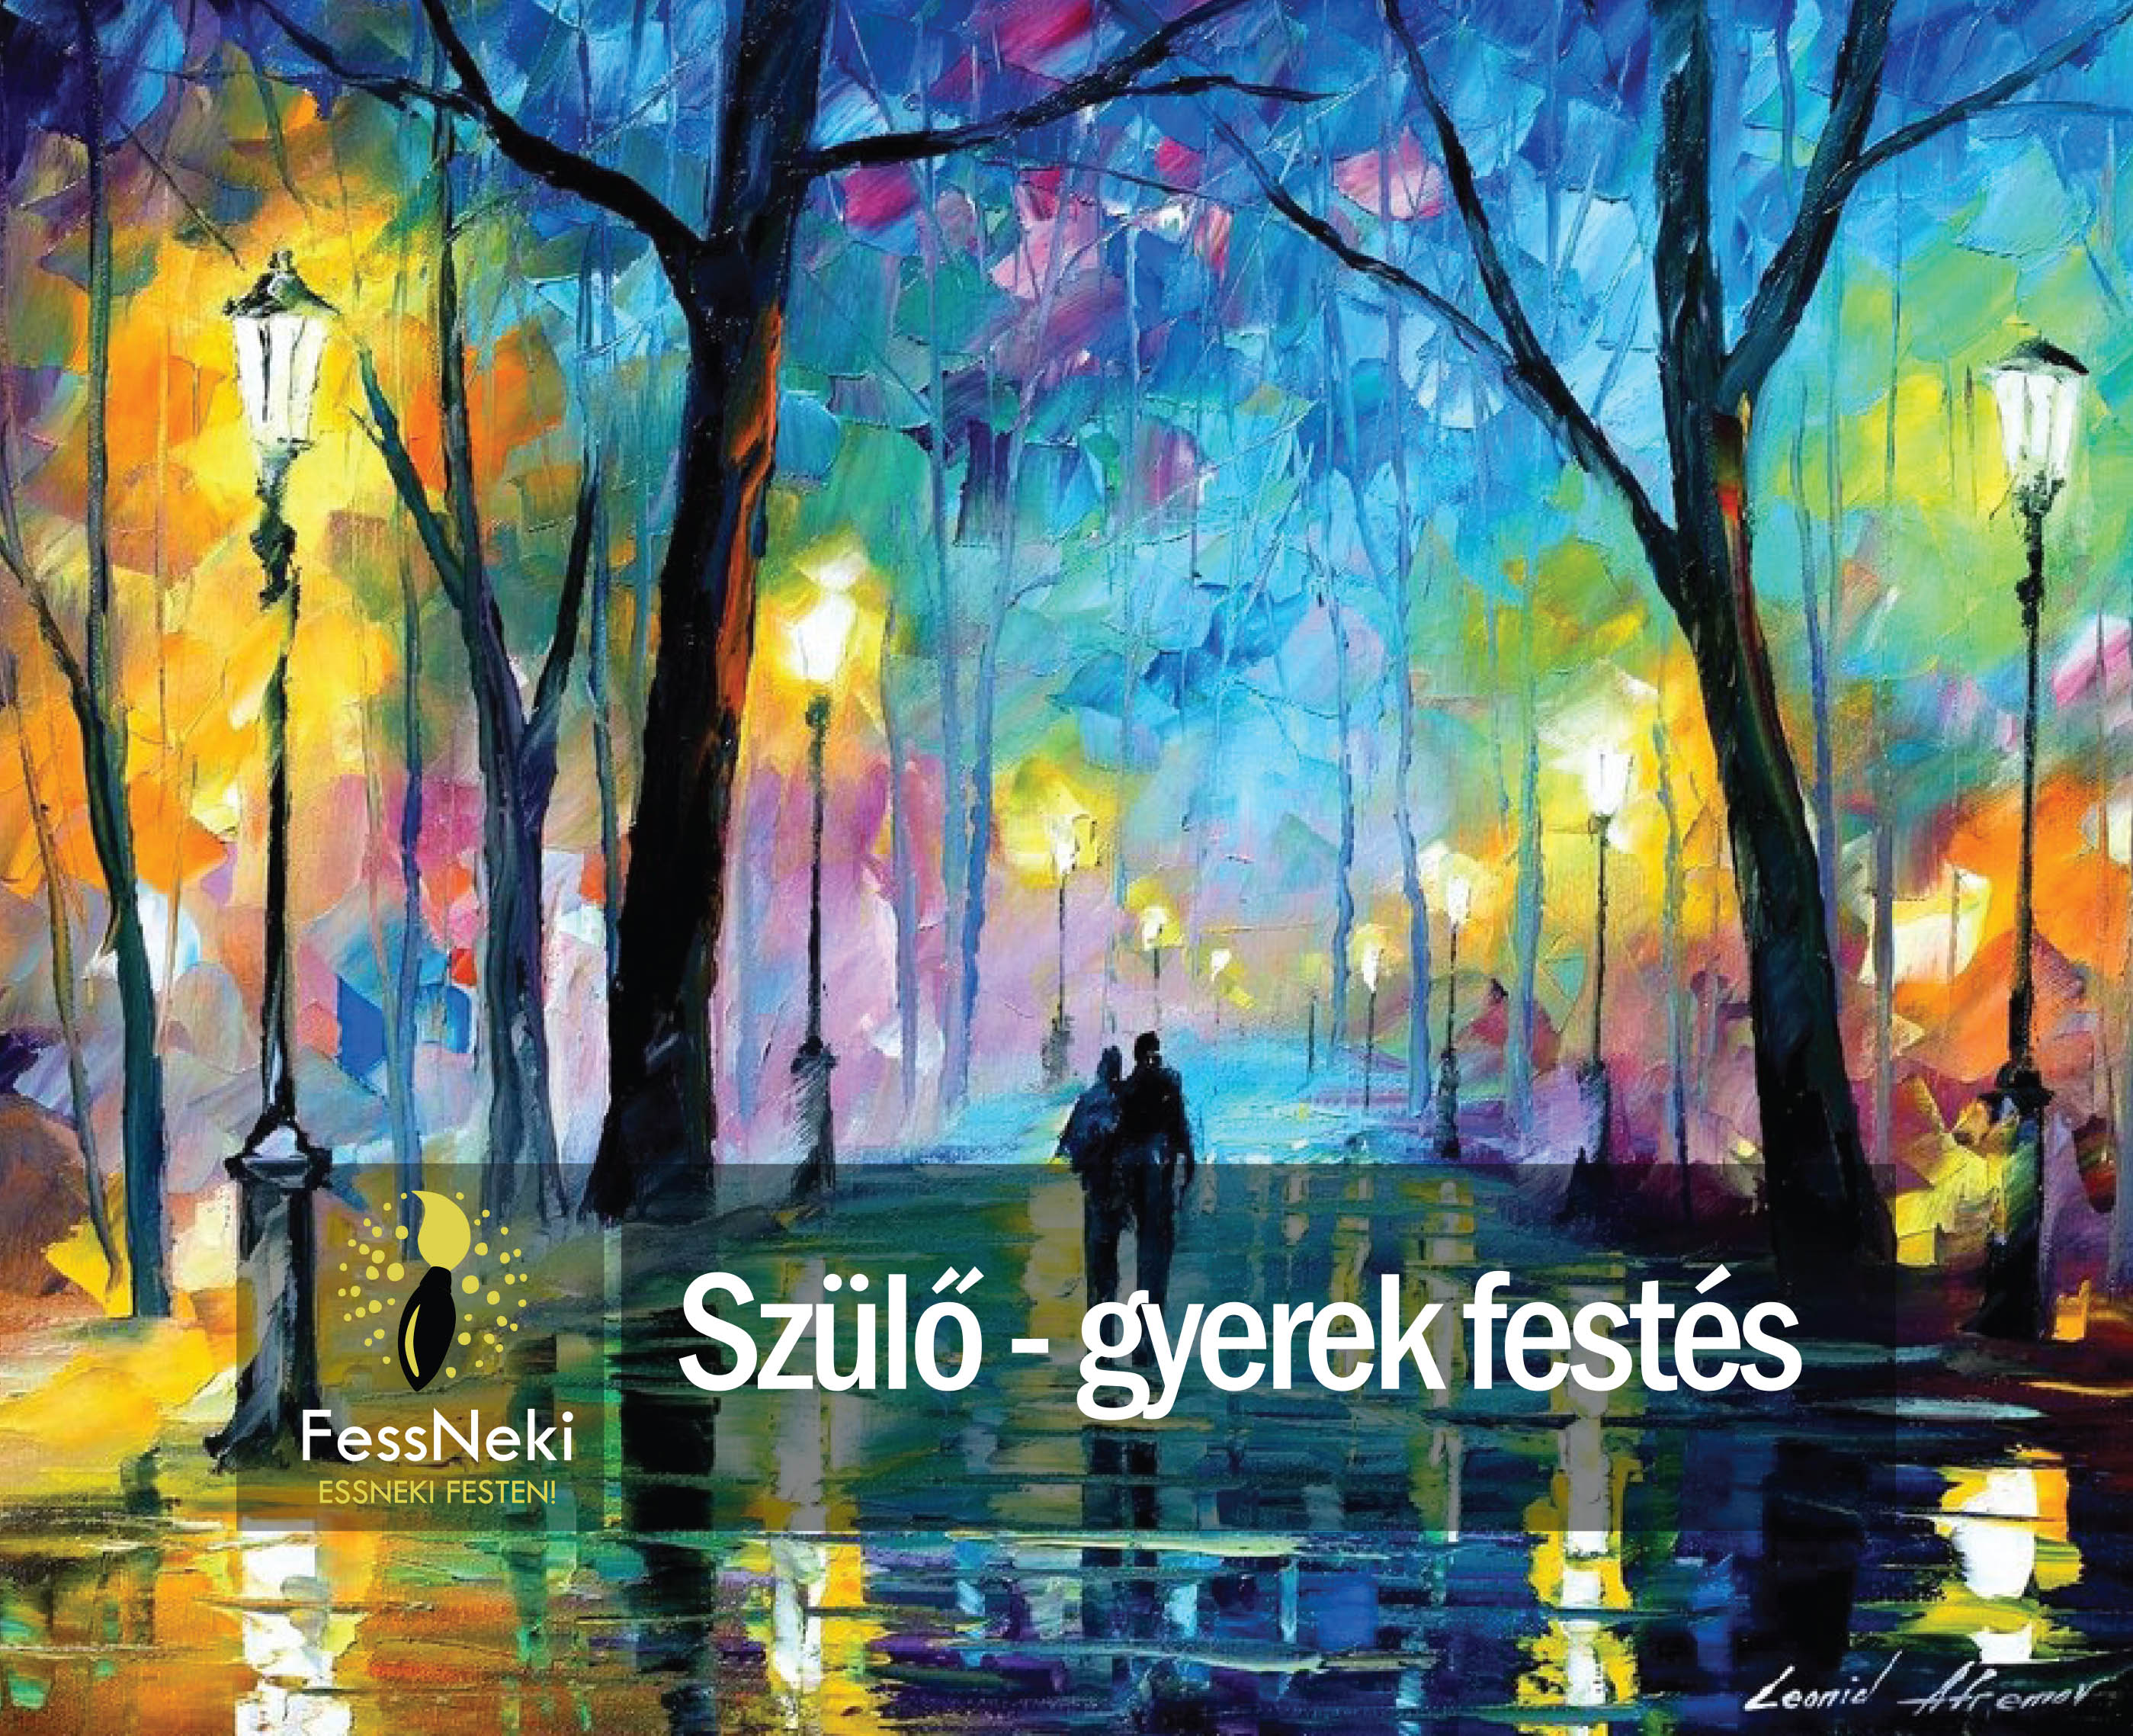 Leonid Afremov: Fog in the park (parent kid event)